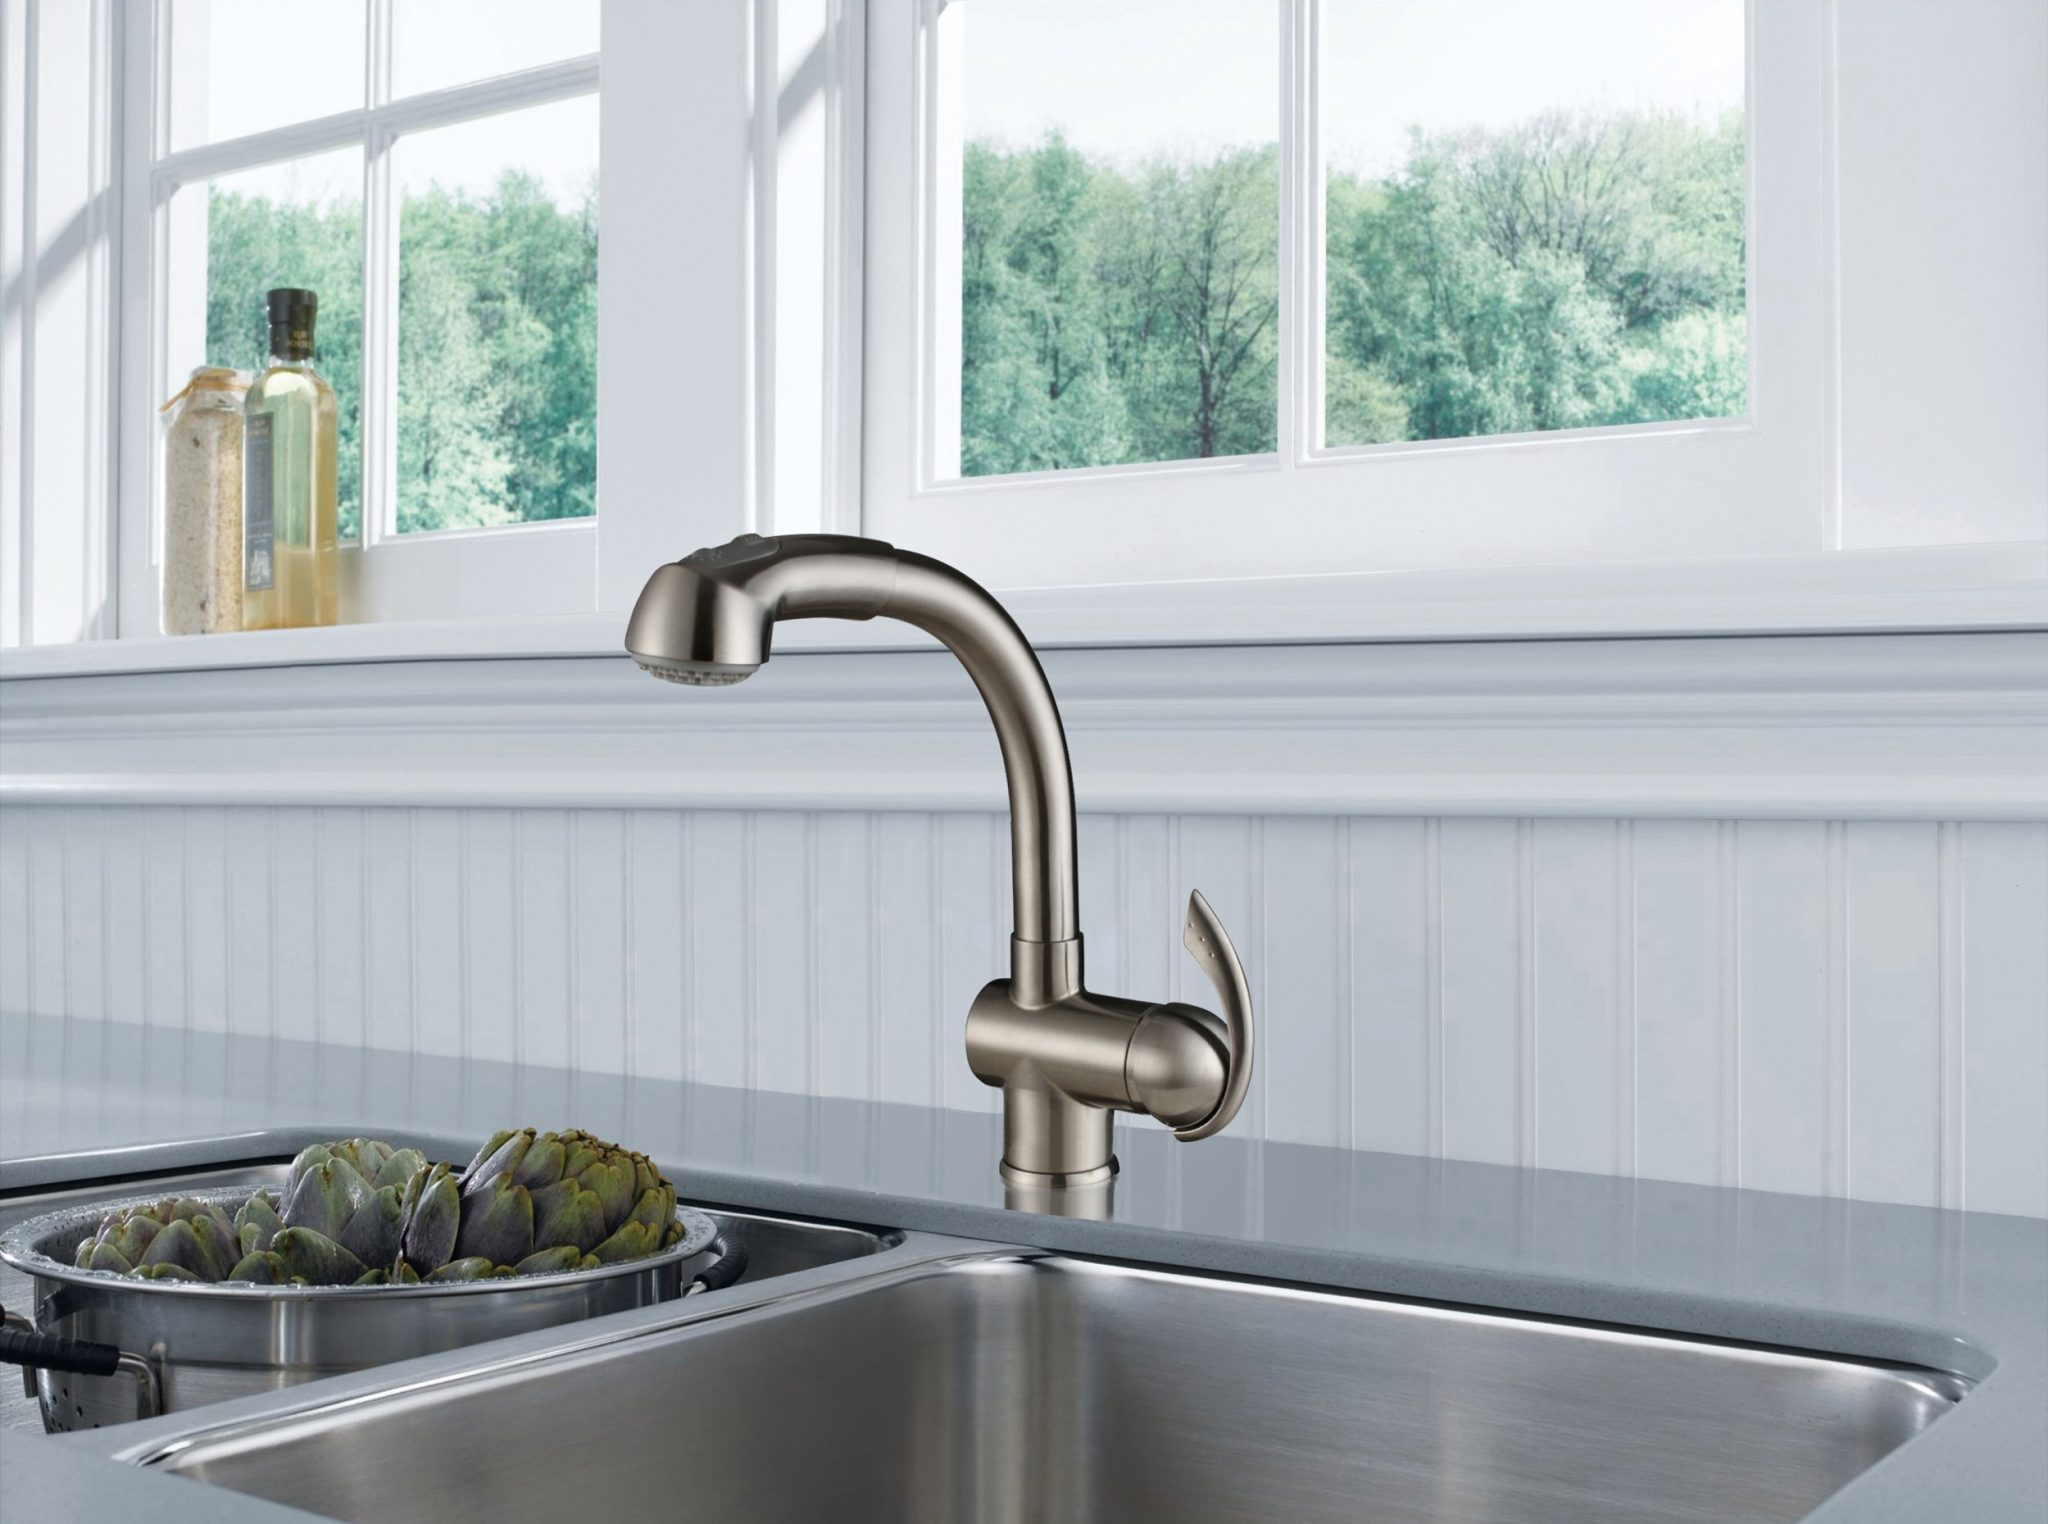 Single Handle Pull-out Kitchen Faucet- KSK1110C – OAKLAND